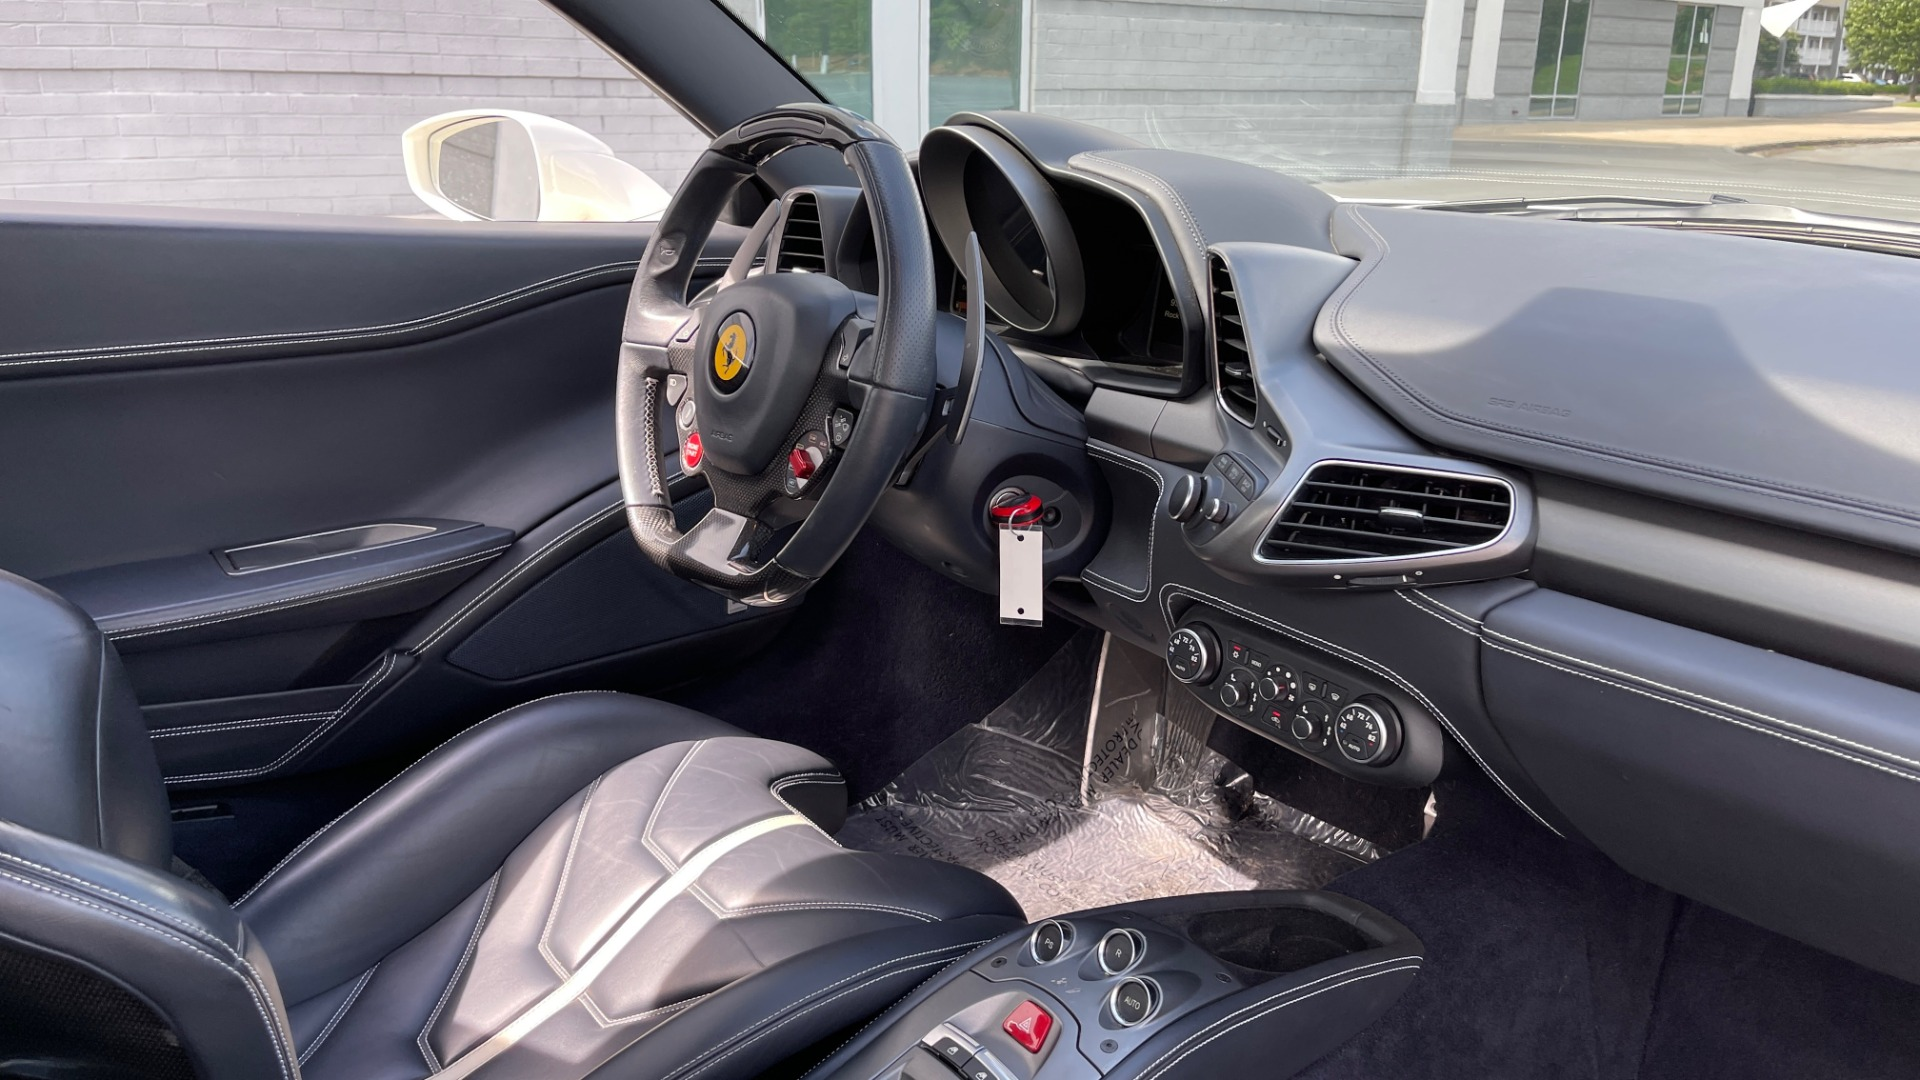 Used 2014 Ferrari 458 ITALIA SPIDER 570HP / F1 AUTO / CF SEATS / CARBON BRAKES / REARVIEW for sale $249,999 at Formula Imports in Charlotte NC 28227 68